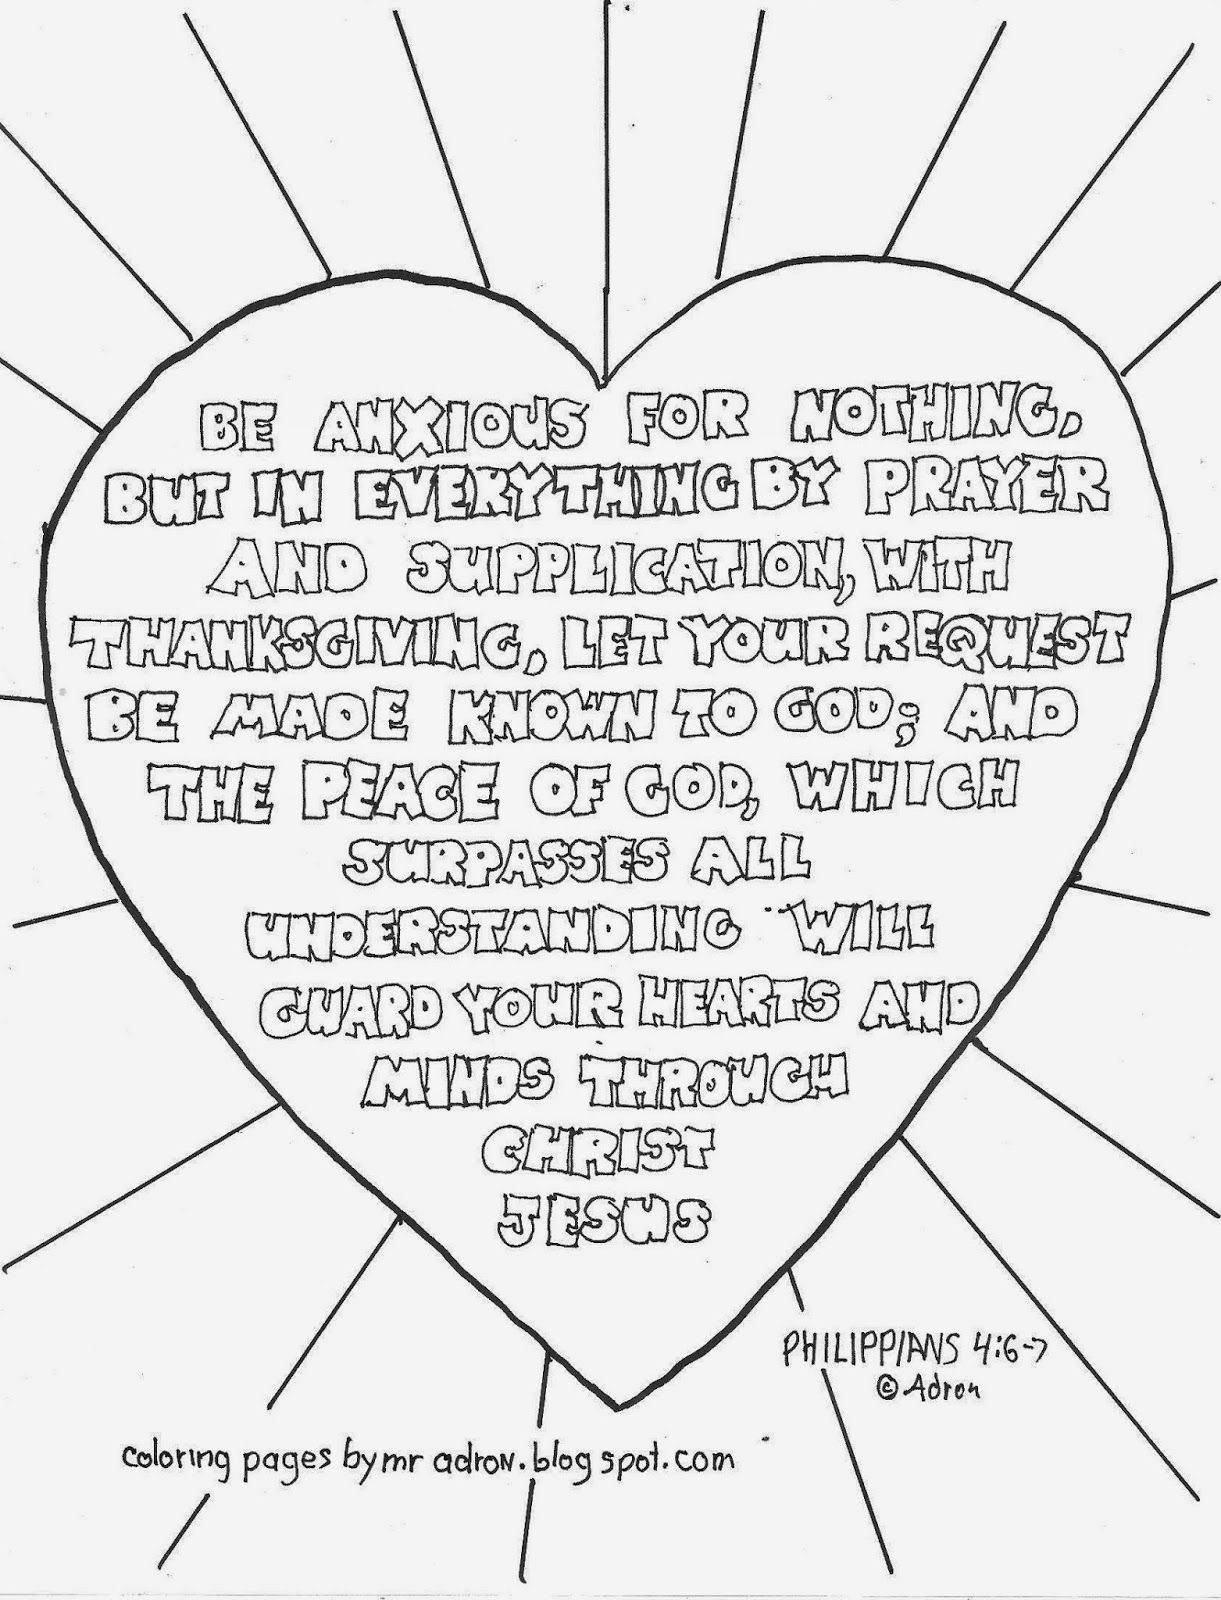 Be anxious for nothing, Philippins 4:6-7 coloring page